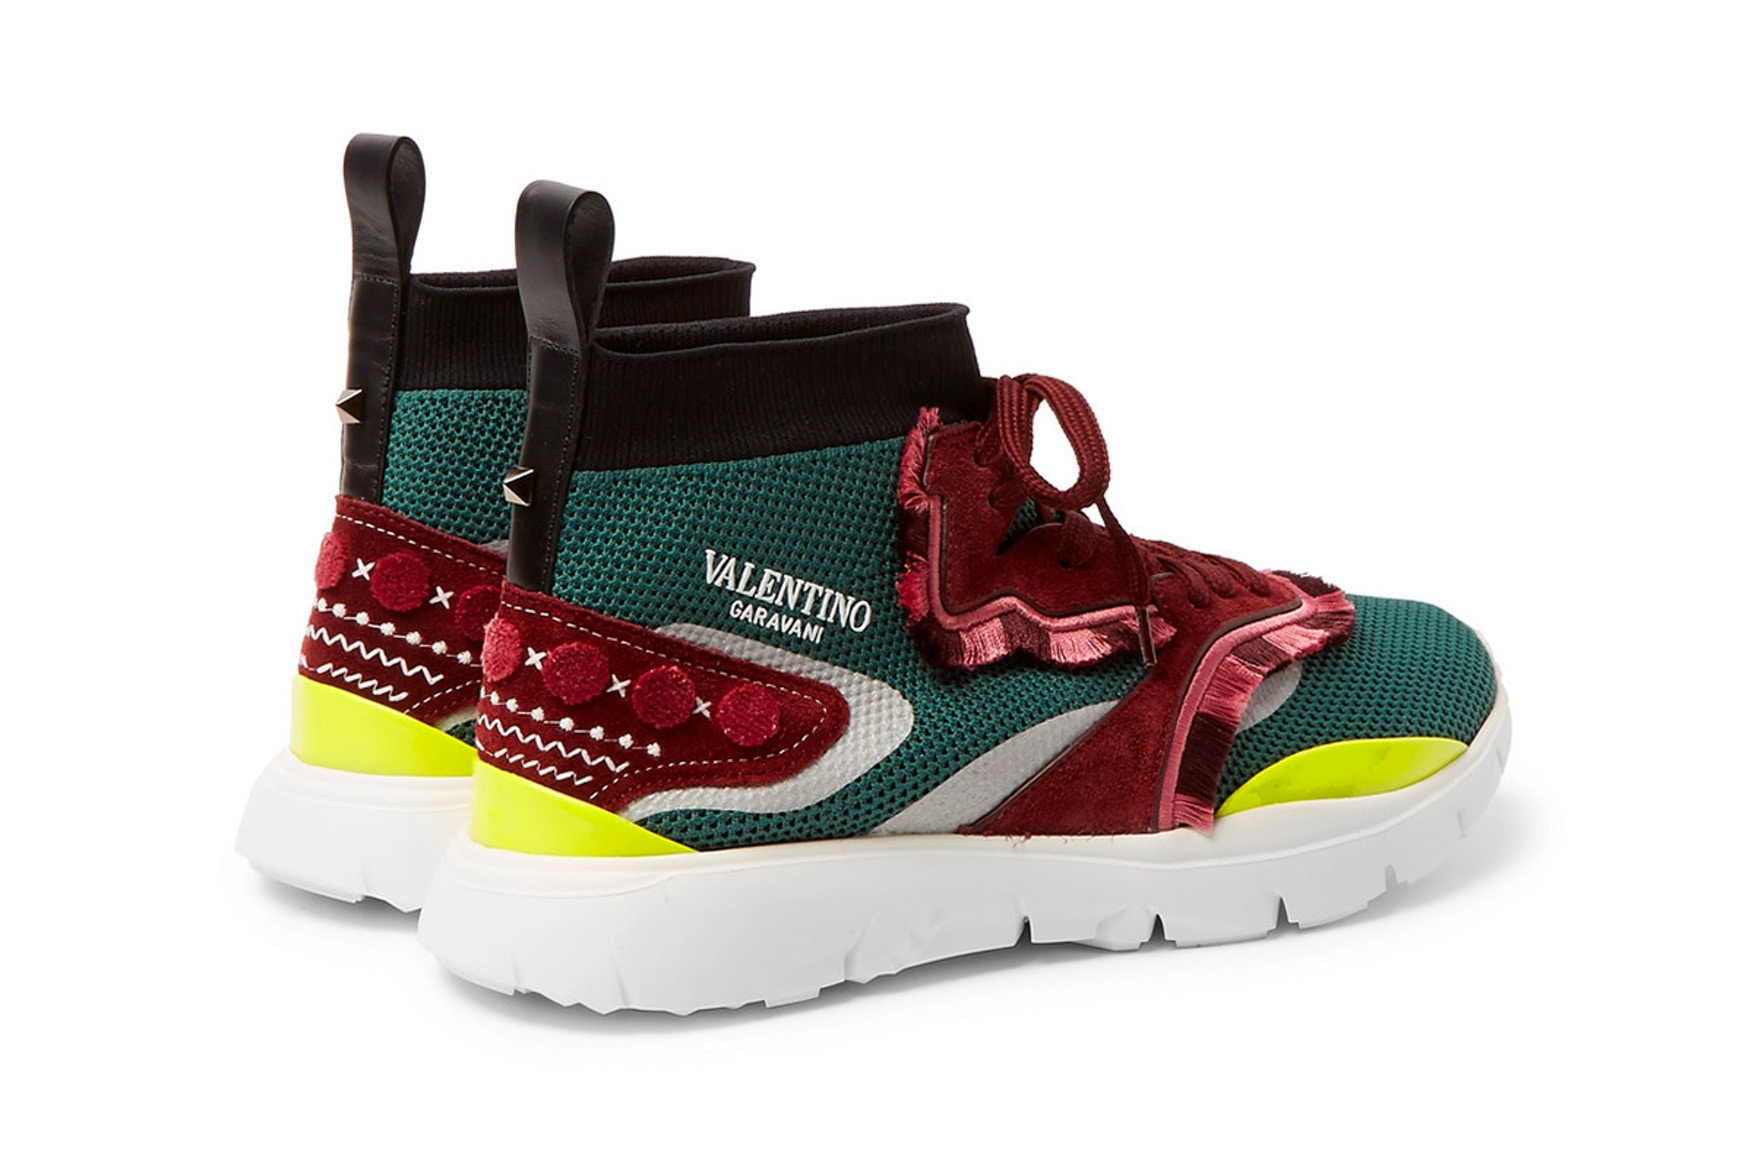 valentino-heroes-tribe-sneakers-release-2